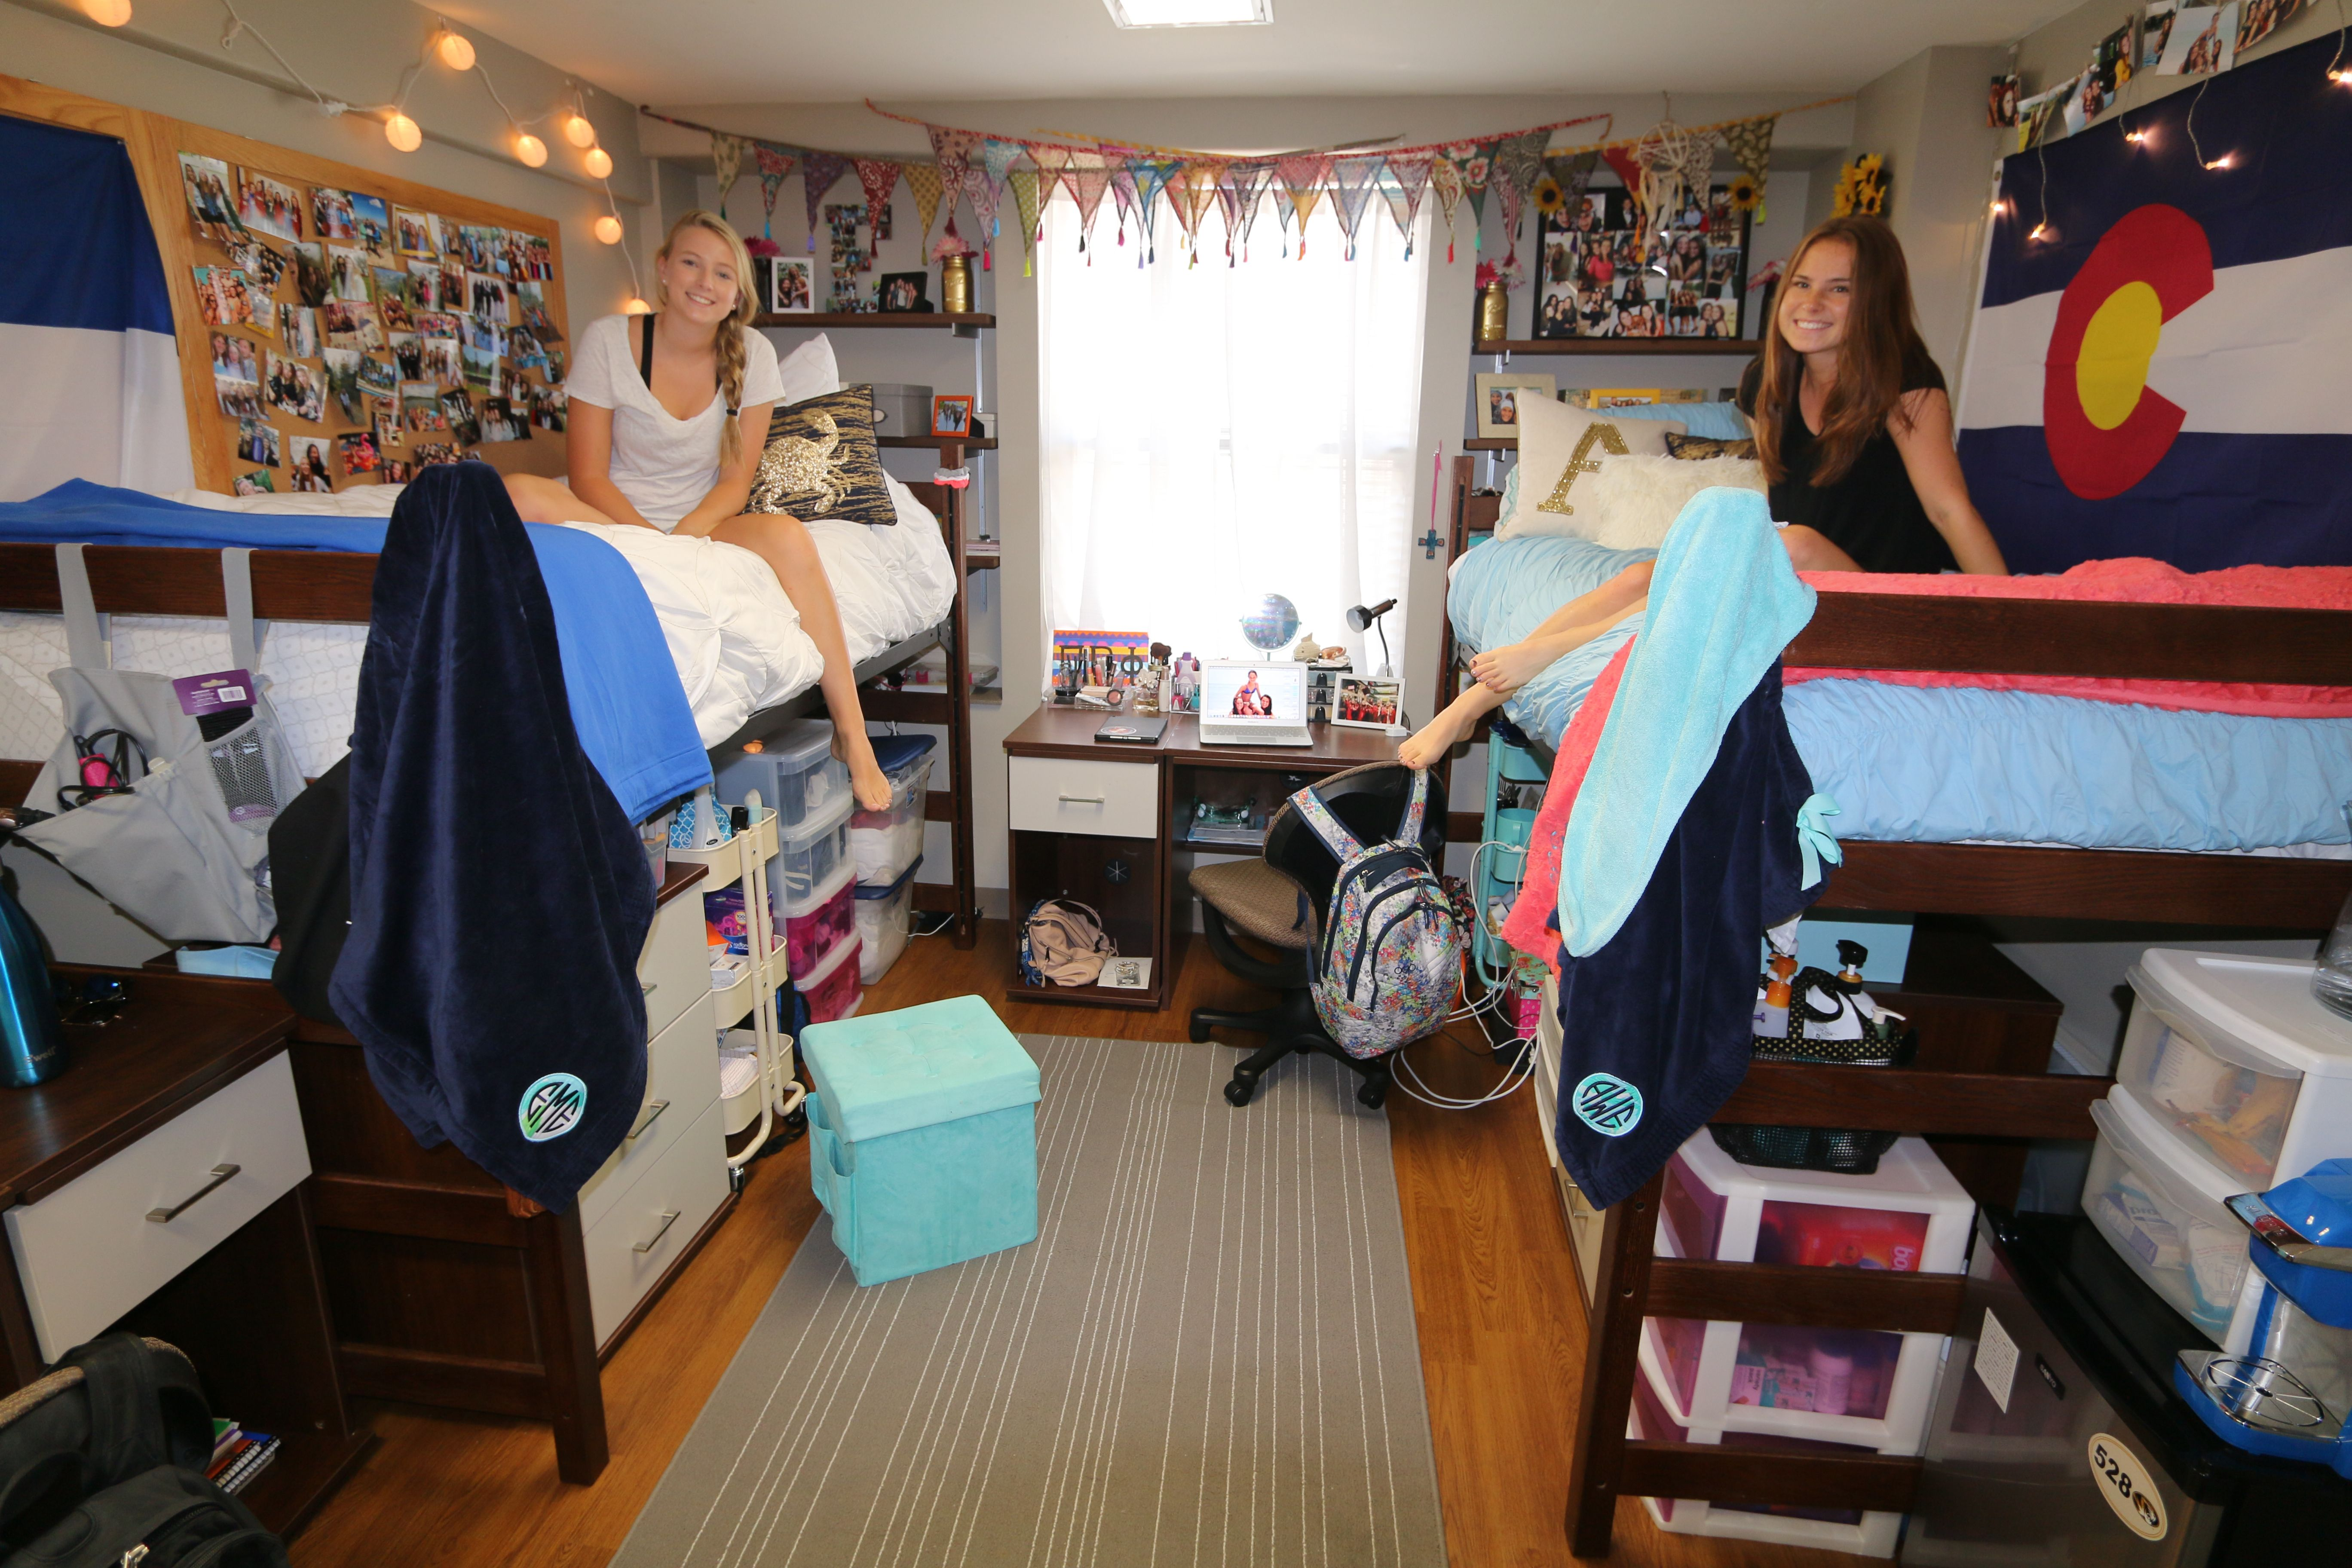 how to find a roommate university of missouri